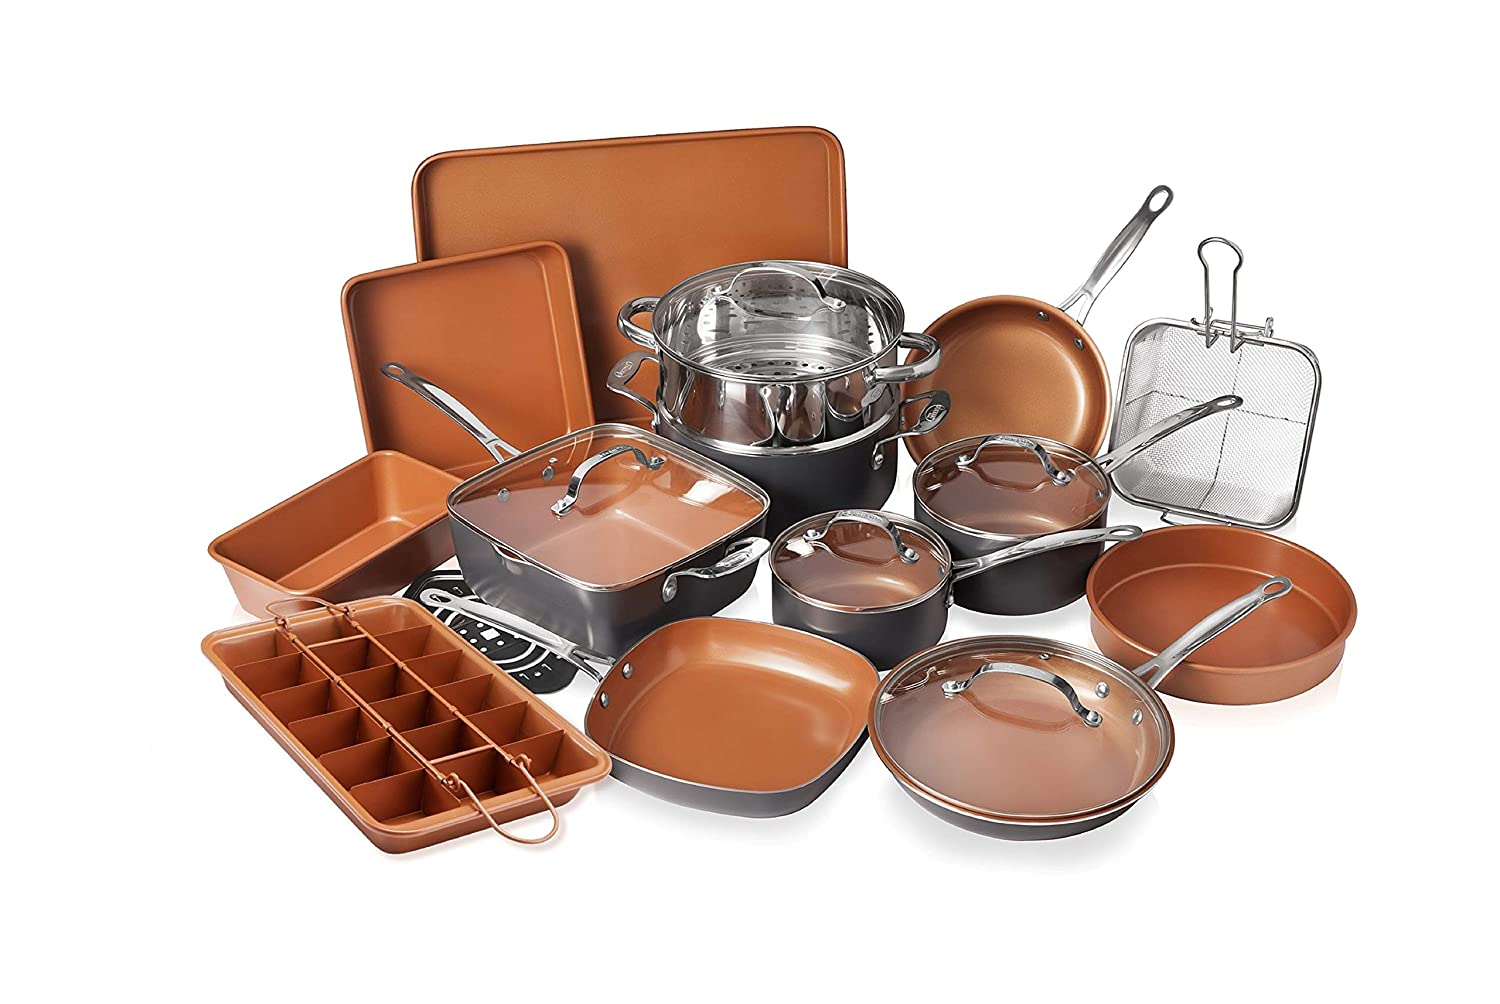 Gotham Steel 20 Piece All in OneKitchen Cookware + Bakeware Set with Non-Stick Ti-Cerama Copper Coating – Includes Skillets, Stock Pots, Deep Square Pan with Fry Basket, Cookie Sheet and Baking Pans